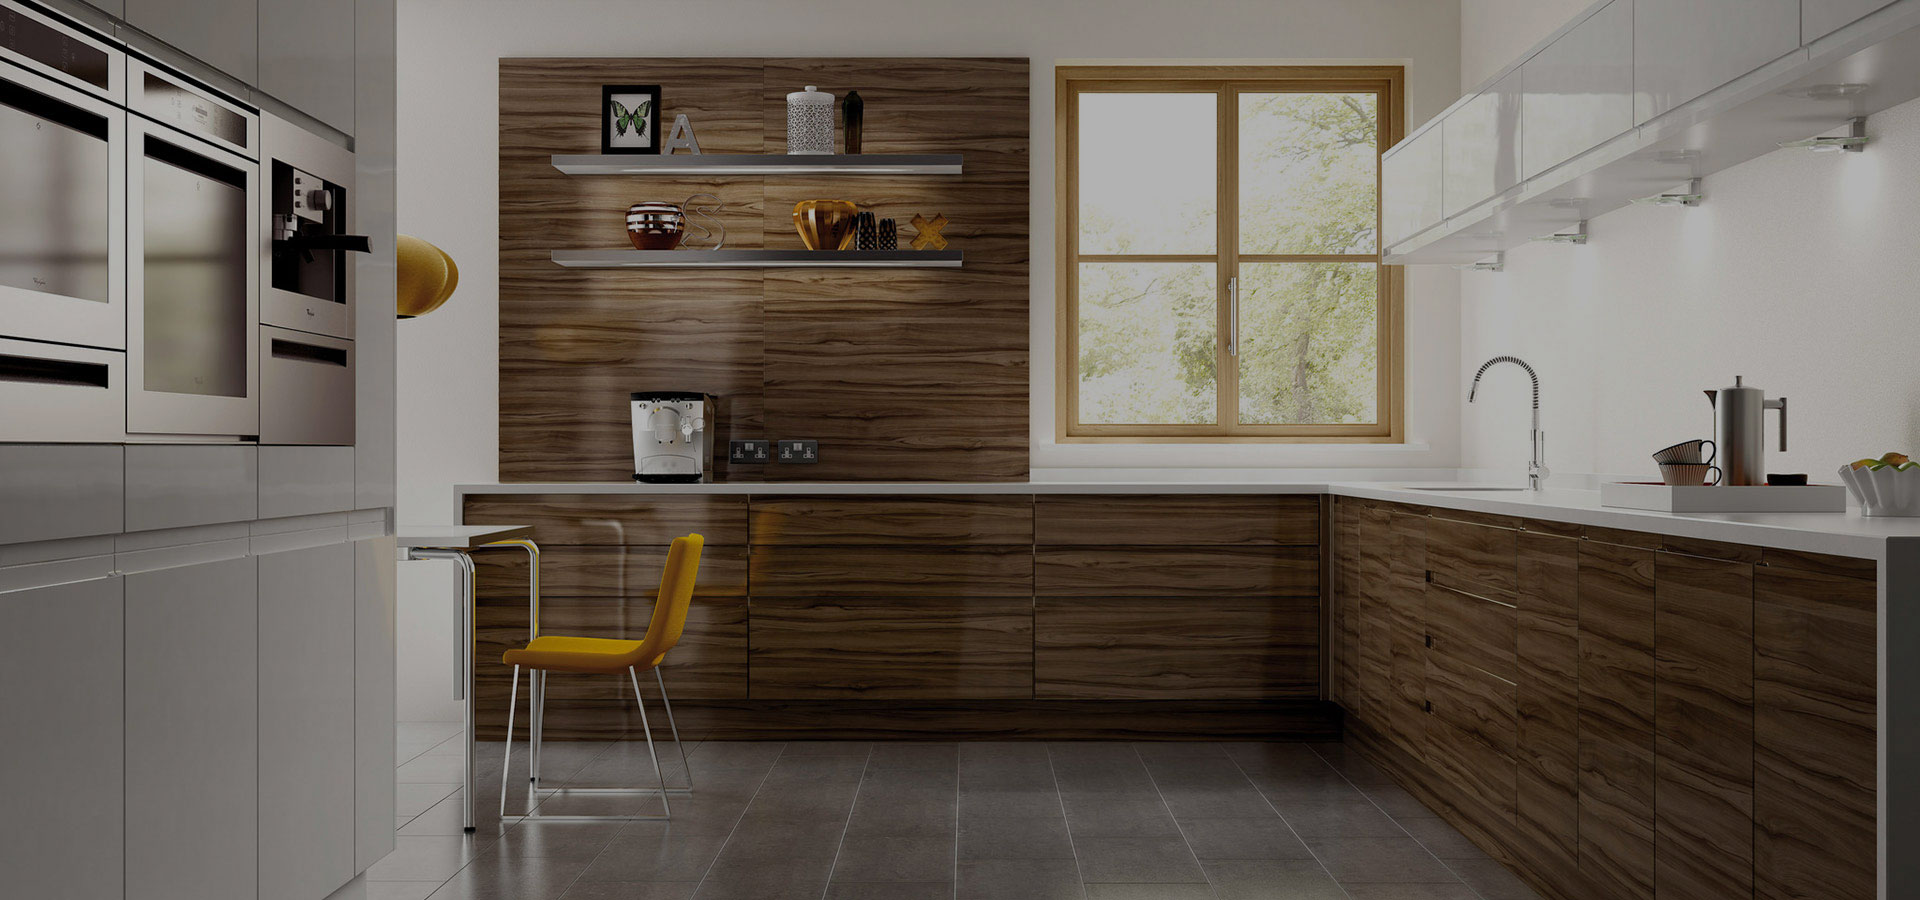 Modern Kitchen Interior Design Specialist